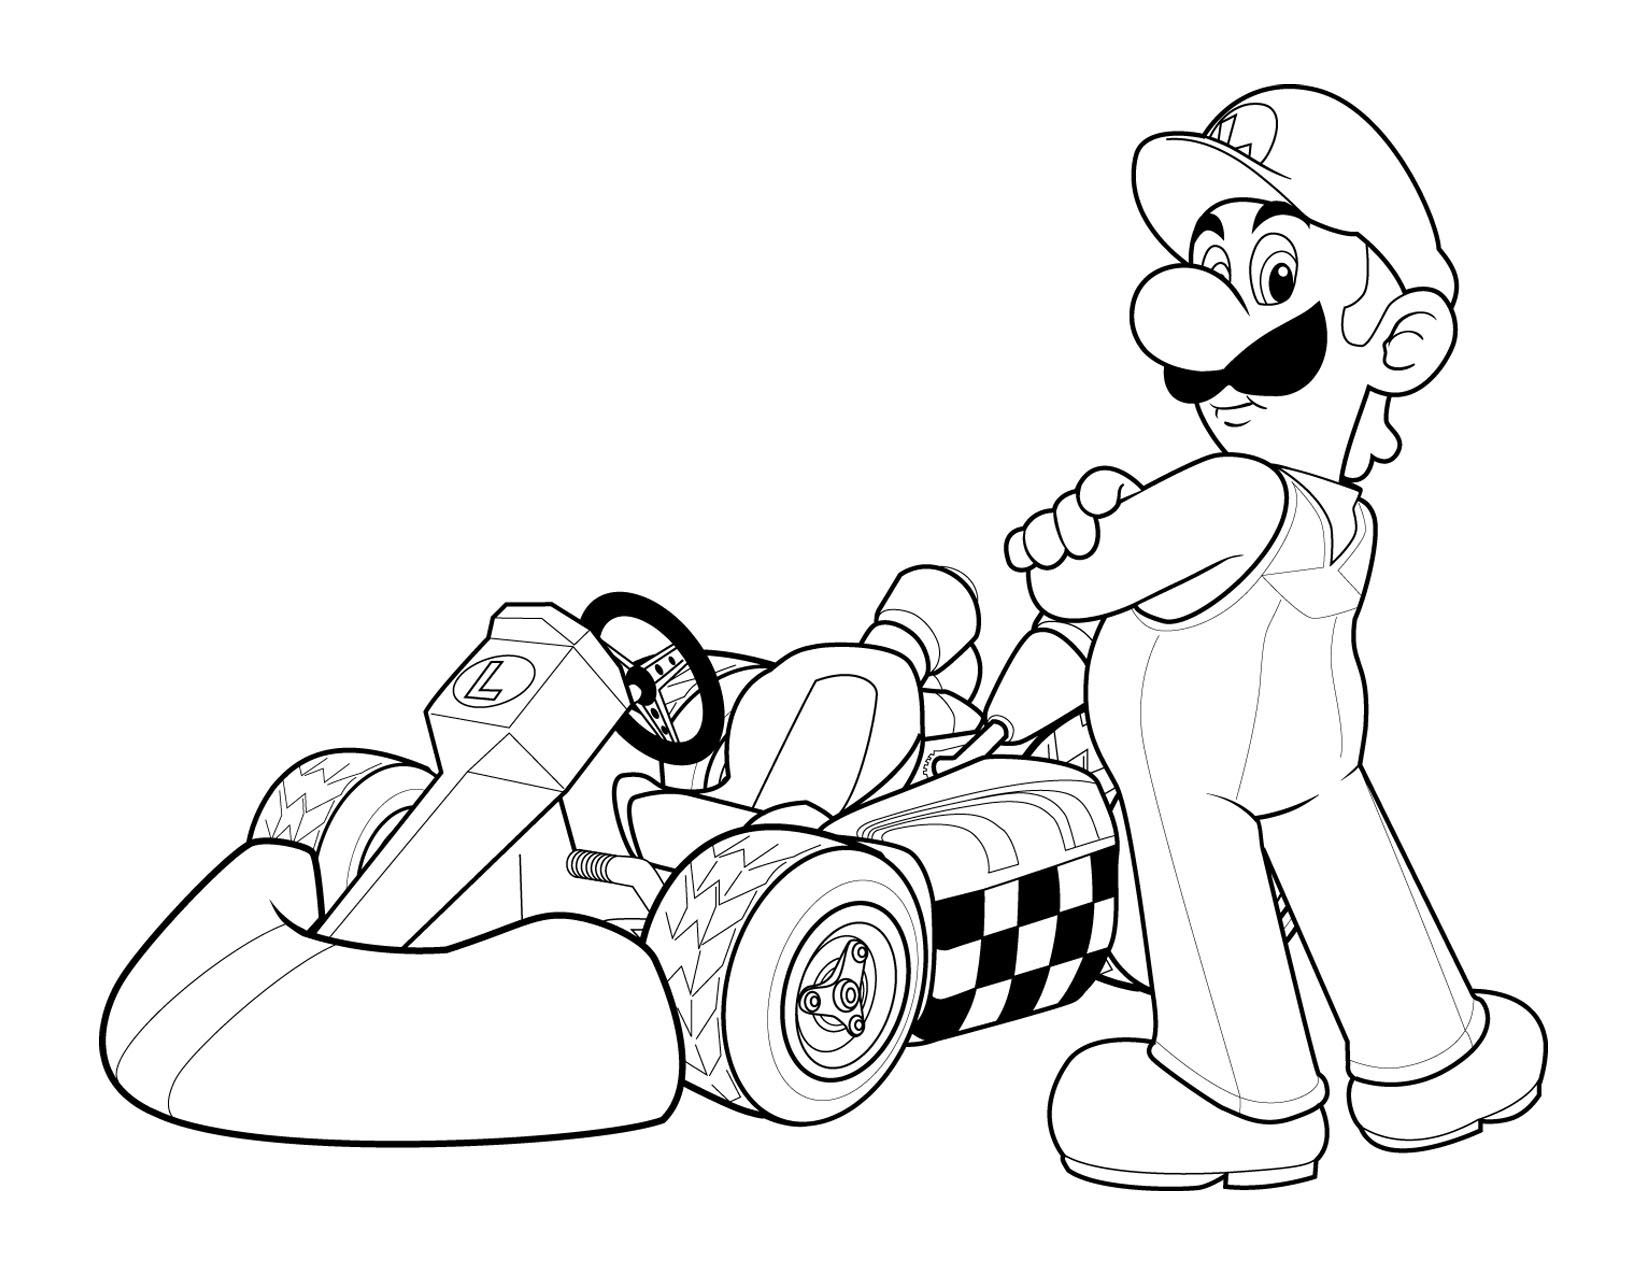 Super Mario Free Coloring Printable 2